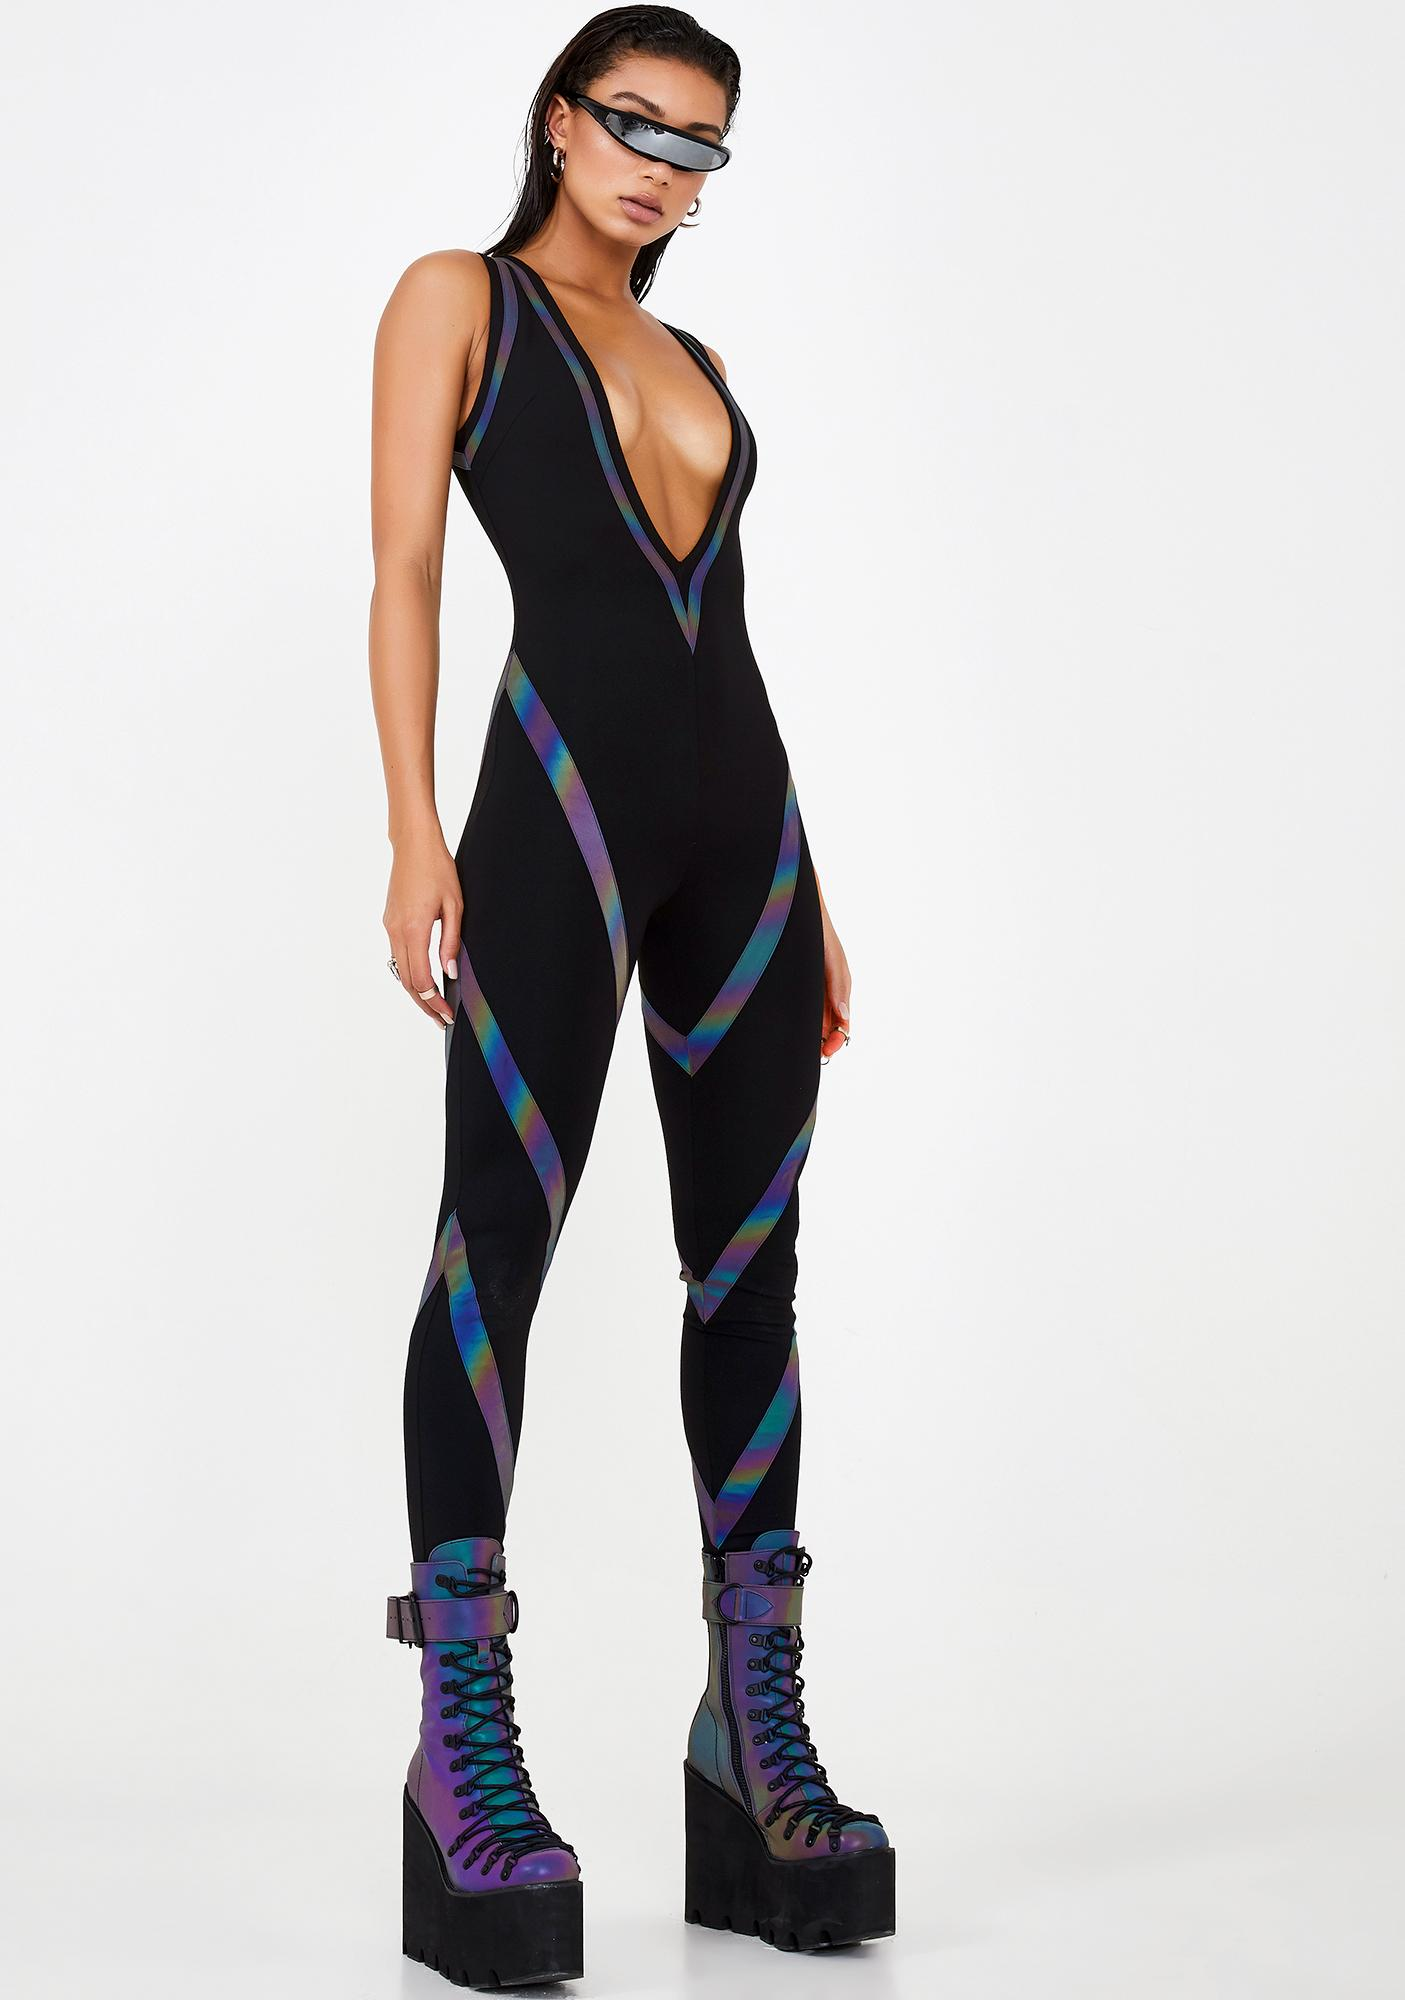 Club Exx Strobelight Seduction Reflective Catsuit